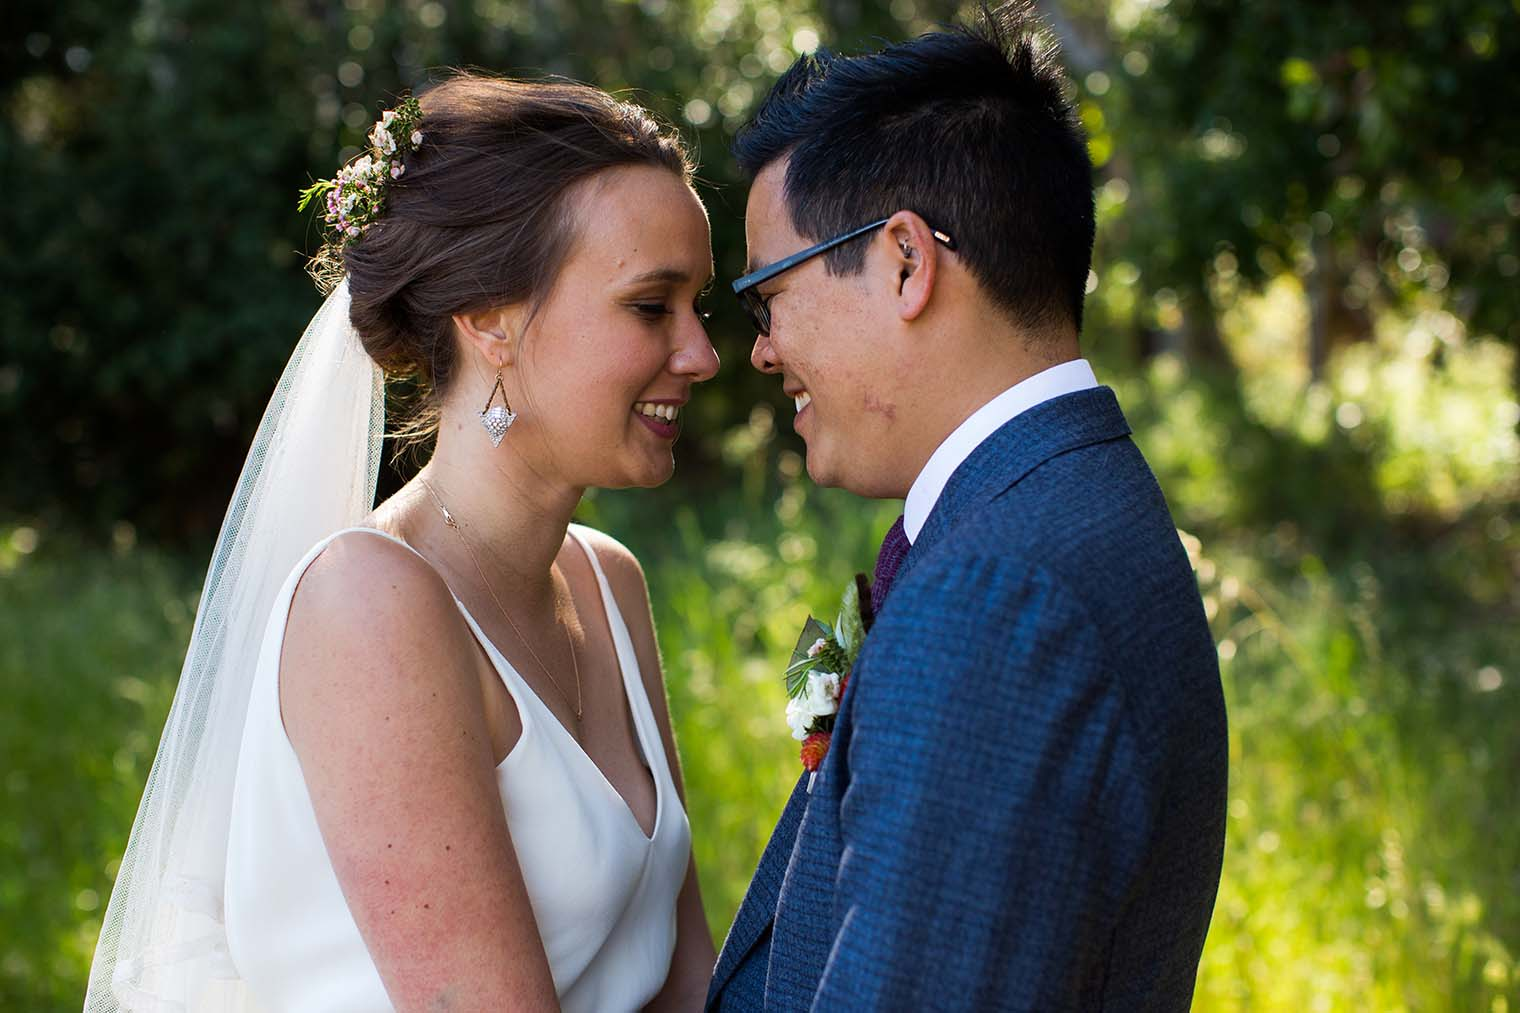 wedding day photos at jack london state historic park